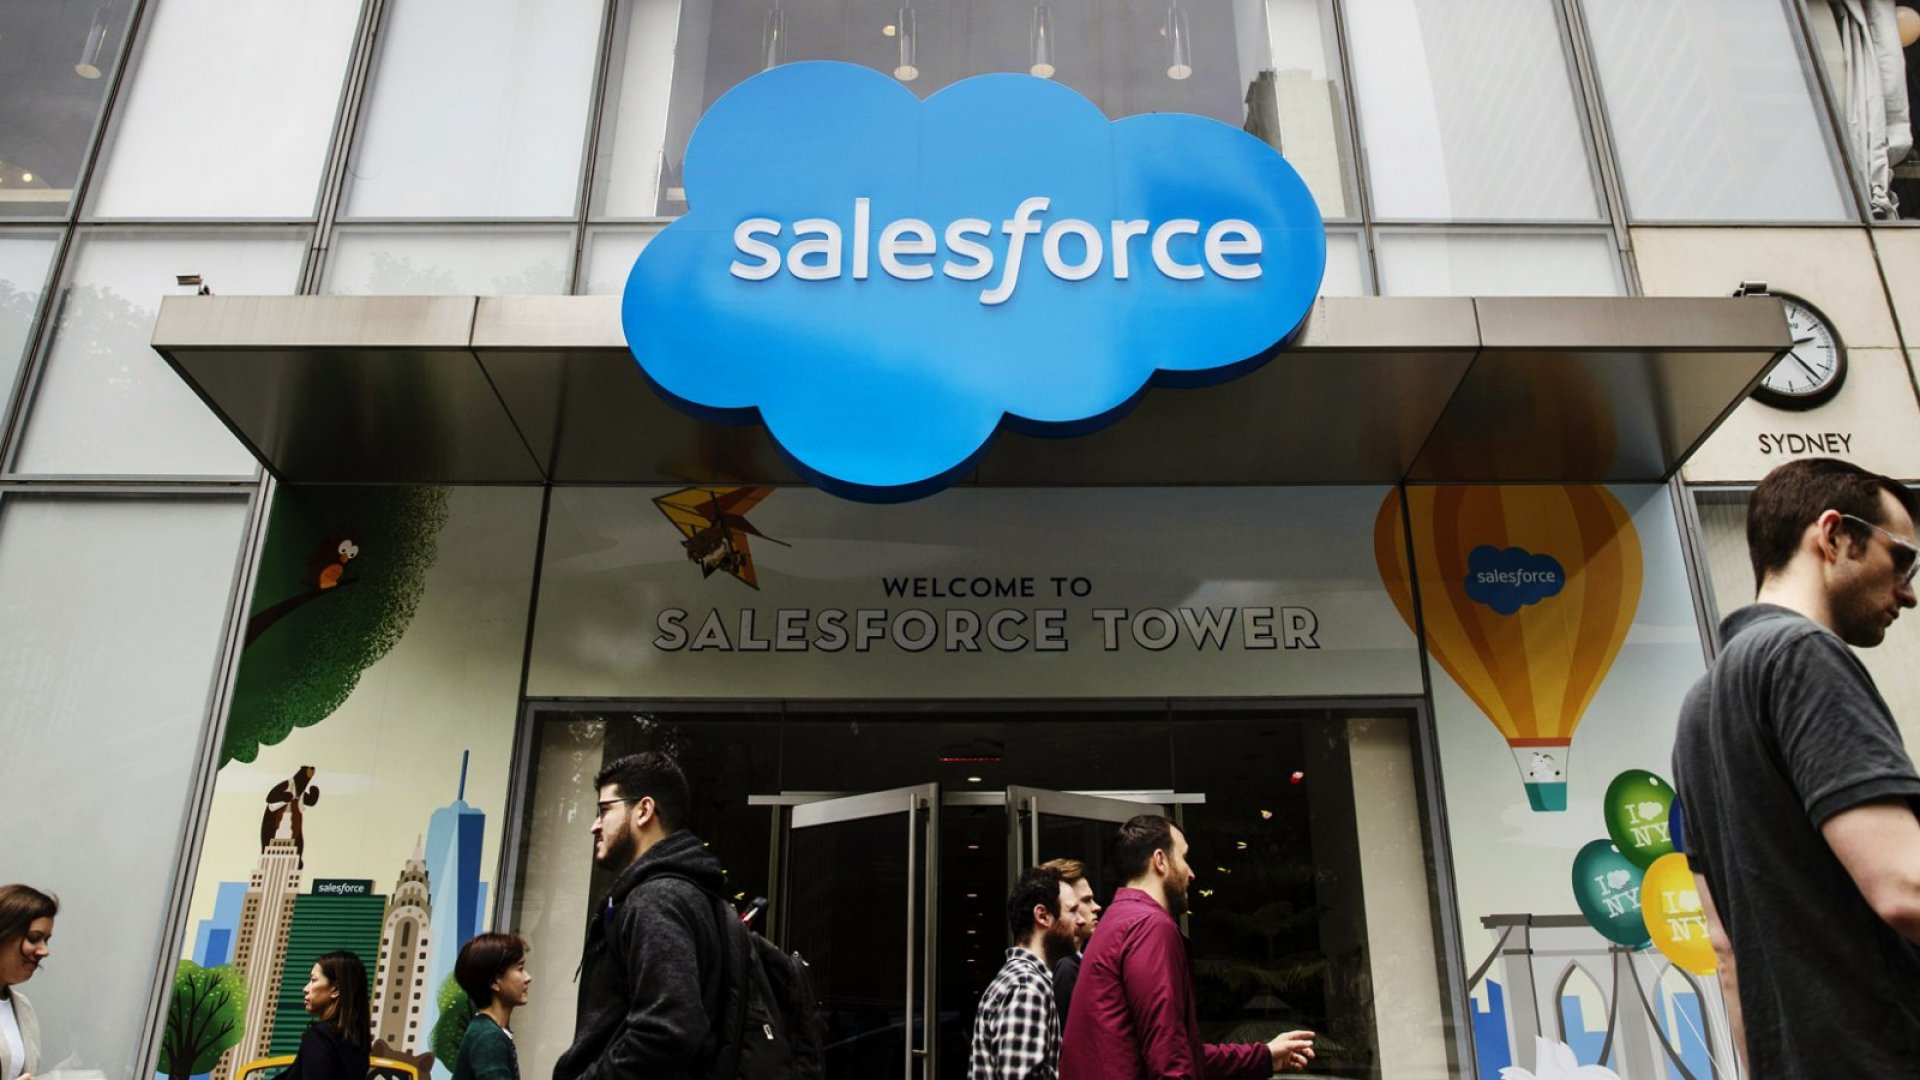 Salesforce Announced Its Biggest Deal Ever, Buying Data Visualizer Tableau for $15.7 Billion. Here's Why It Matters